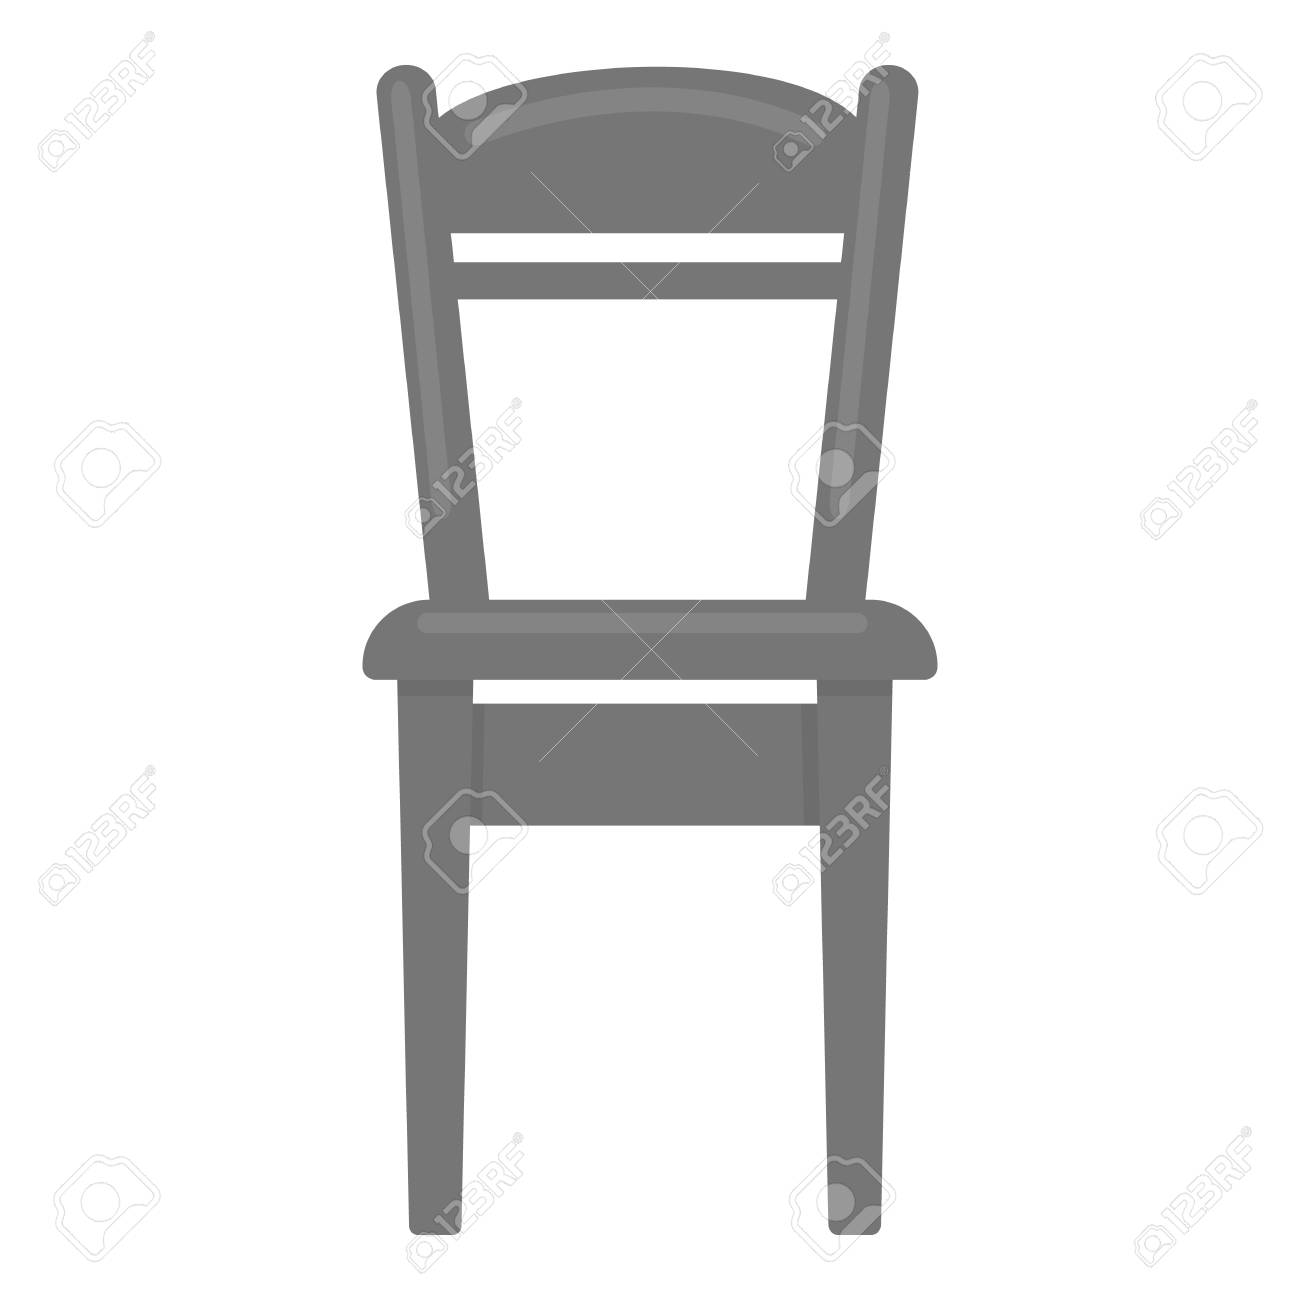 Mobile Chair Chair Icon Of Vector Illustration For Web And Mobile Design